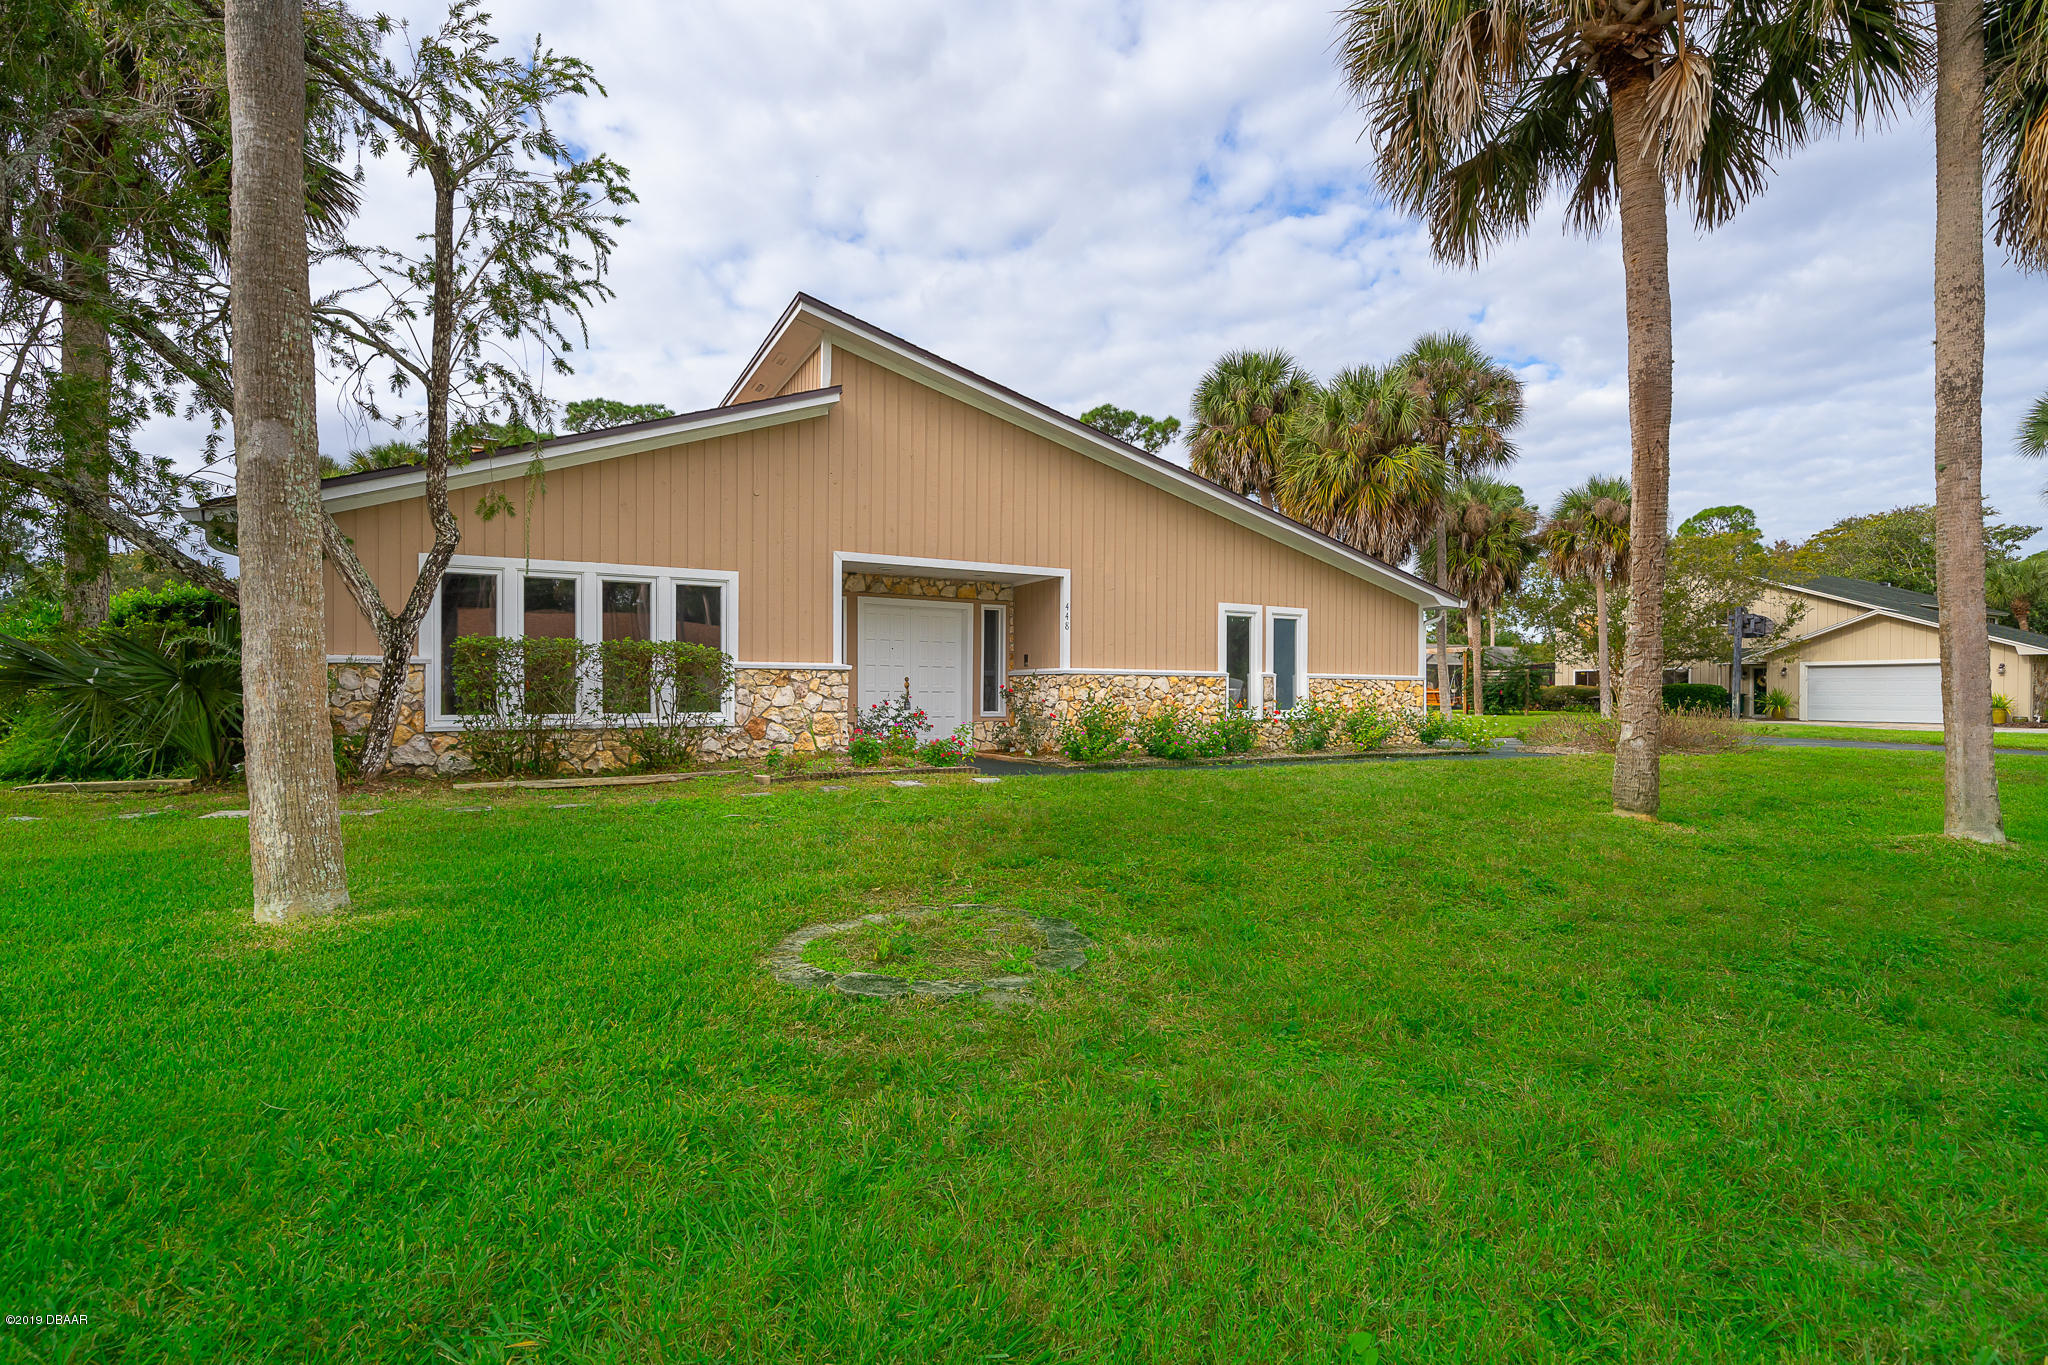 Photo of 448 Pelican Bay Drive, Daytona Beach, FL 32119